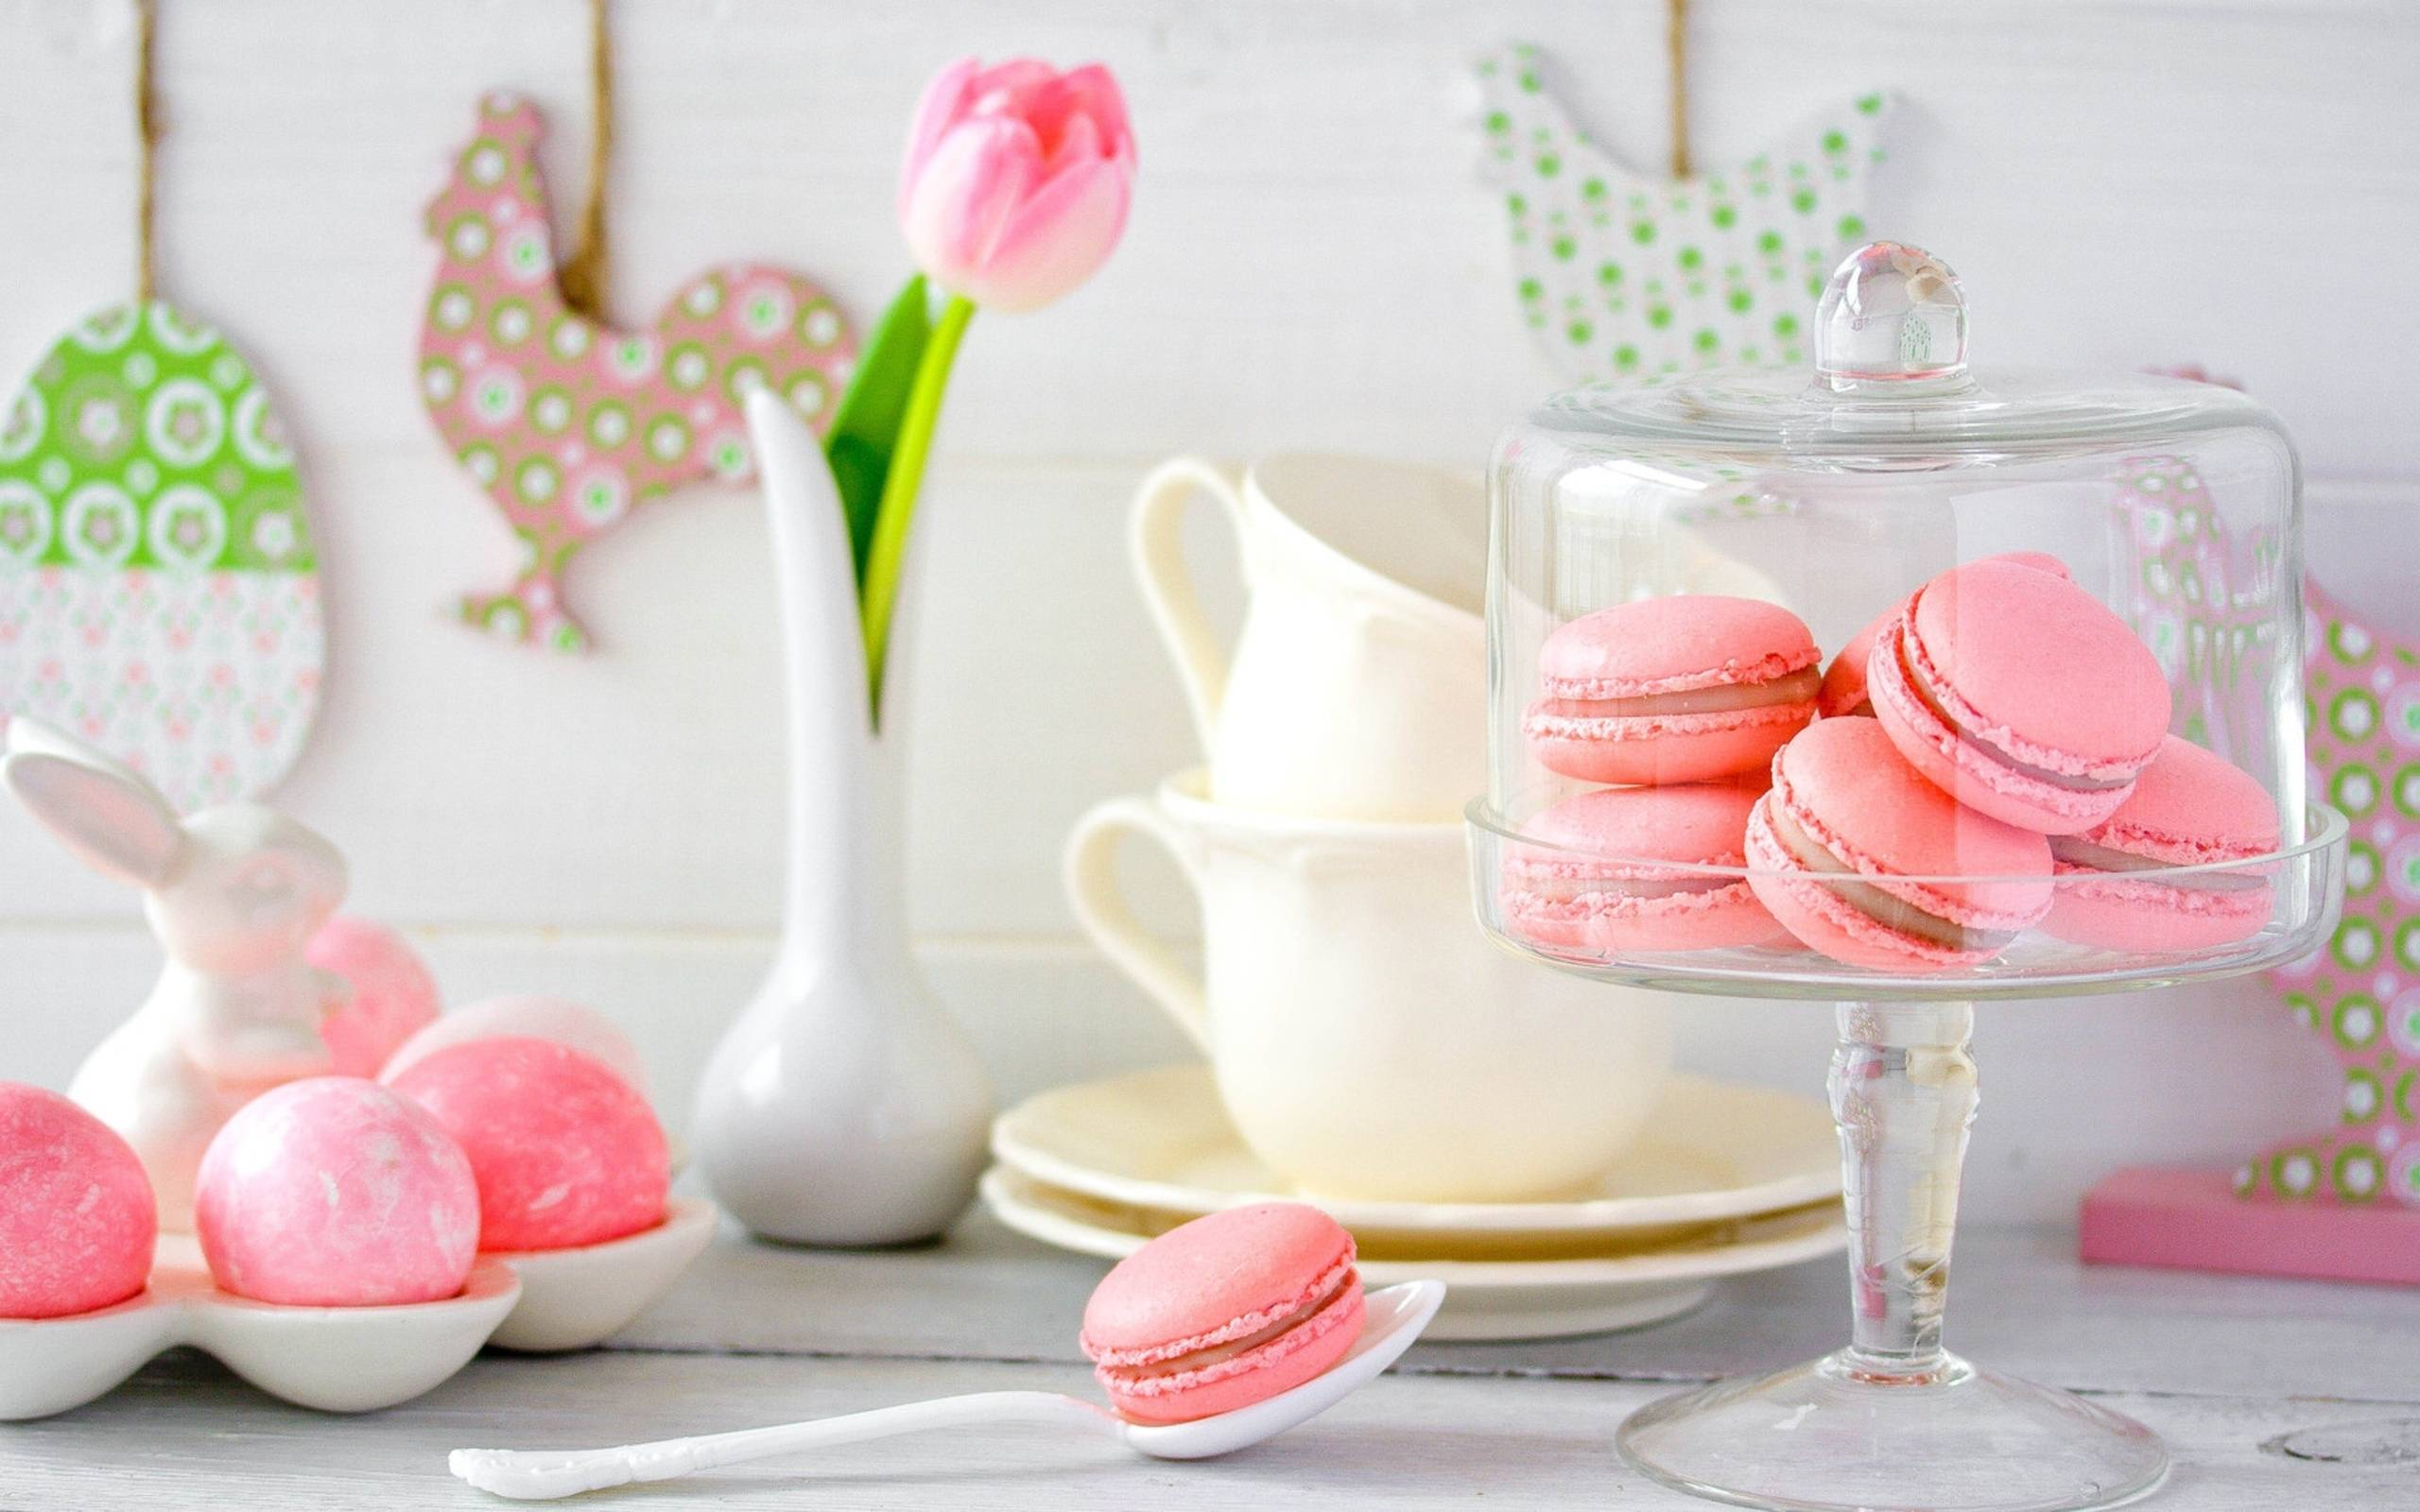 macaron wallpapers - wallpaper cave